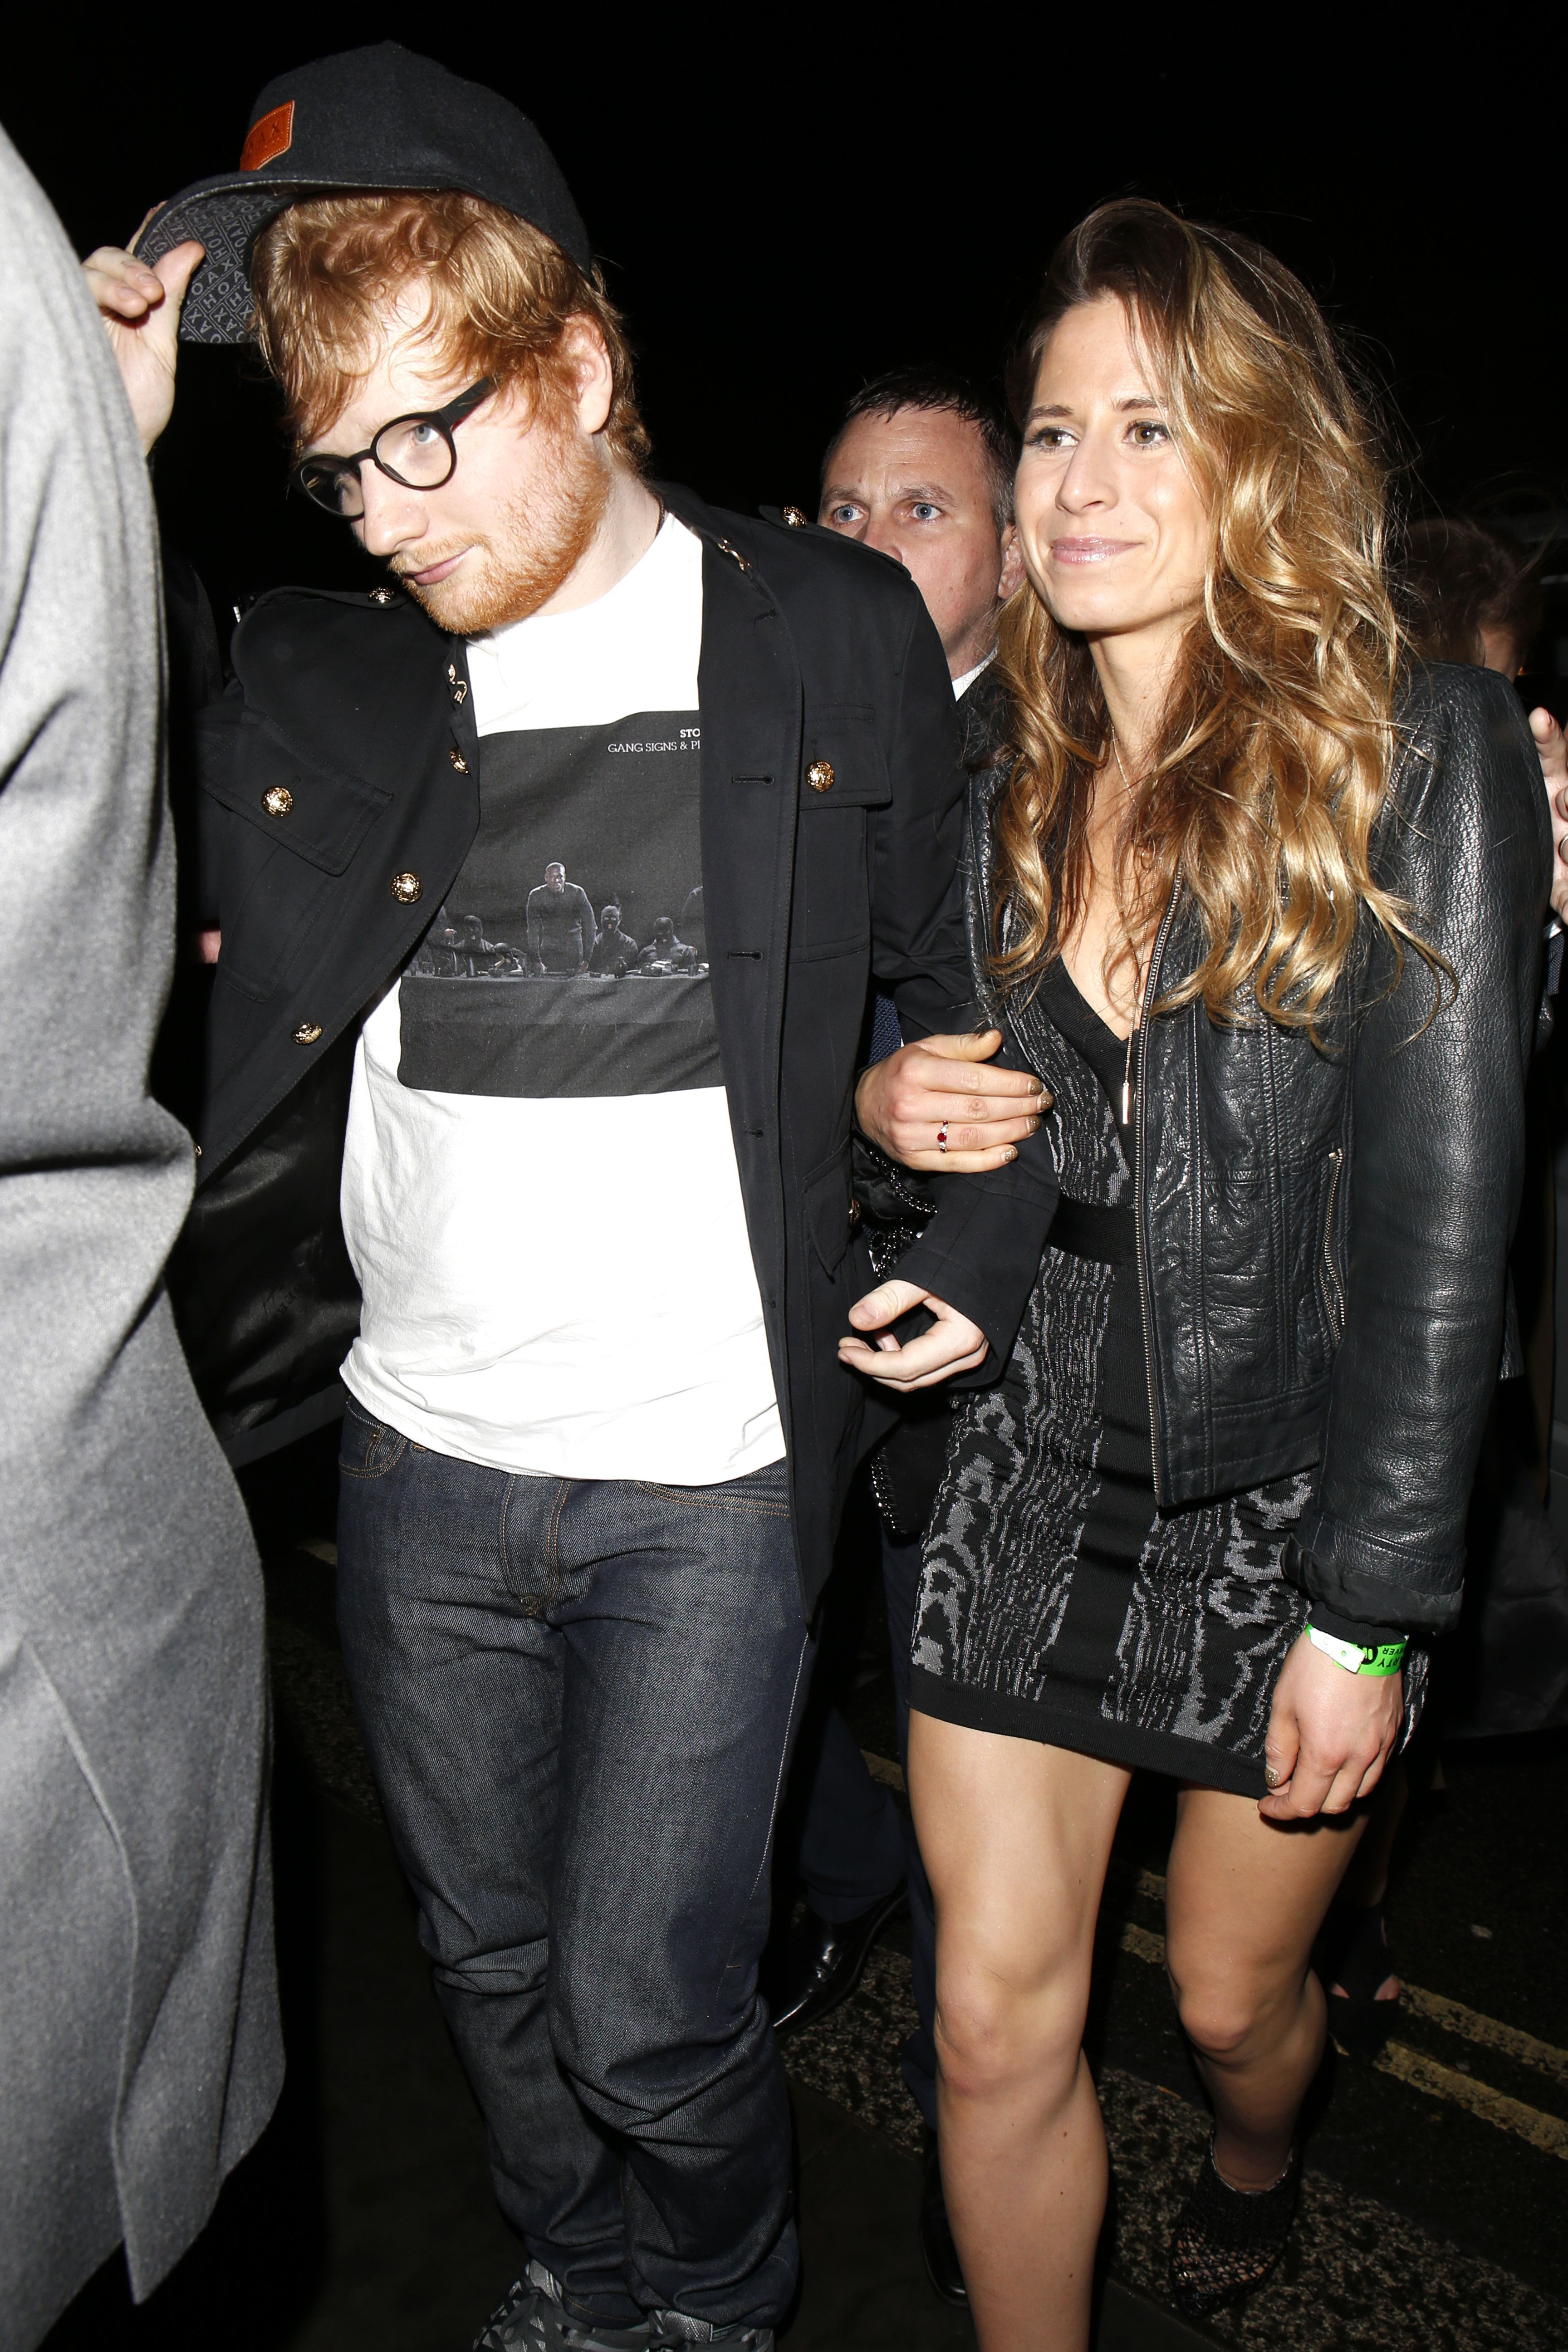 Ed Sheeran and Cherry Seaborn leave the Warner Music Brit Awards afterparty in London on Feb. 22, 2017.